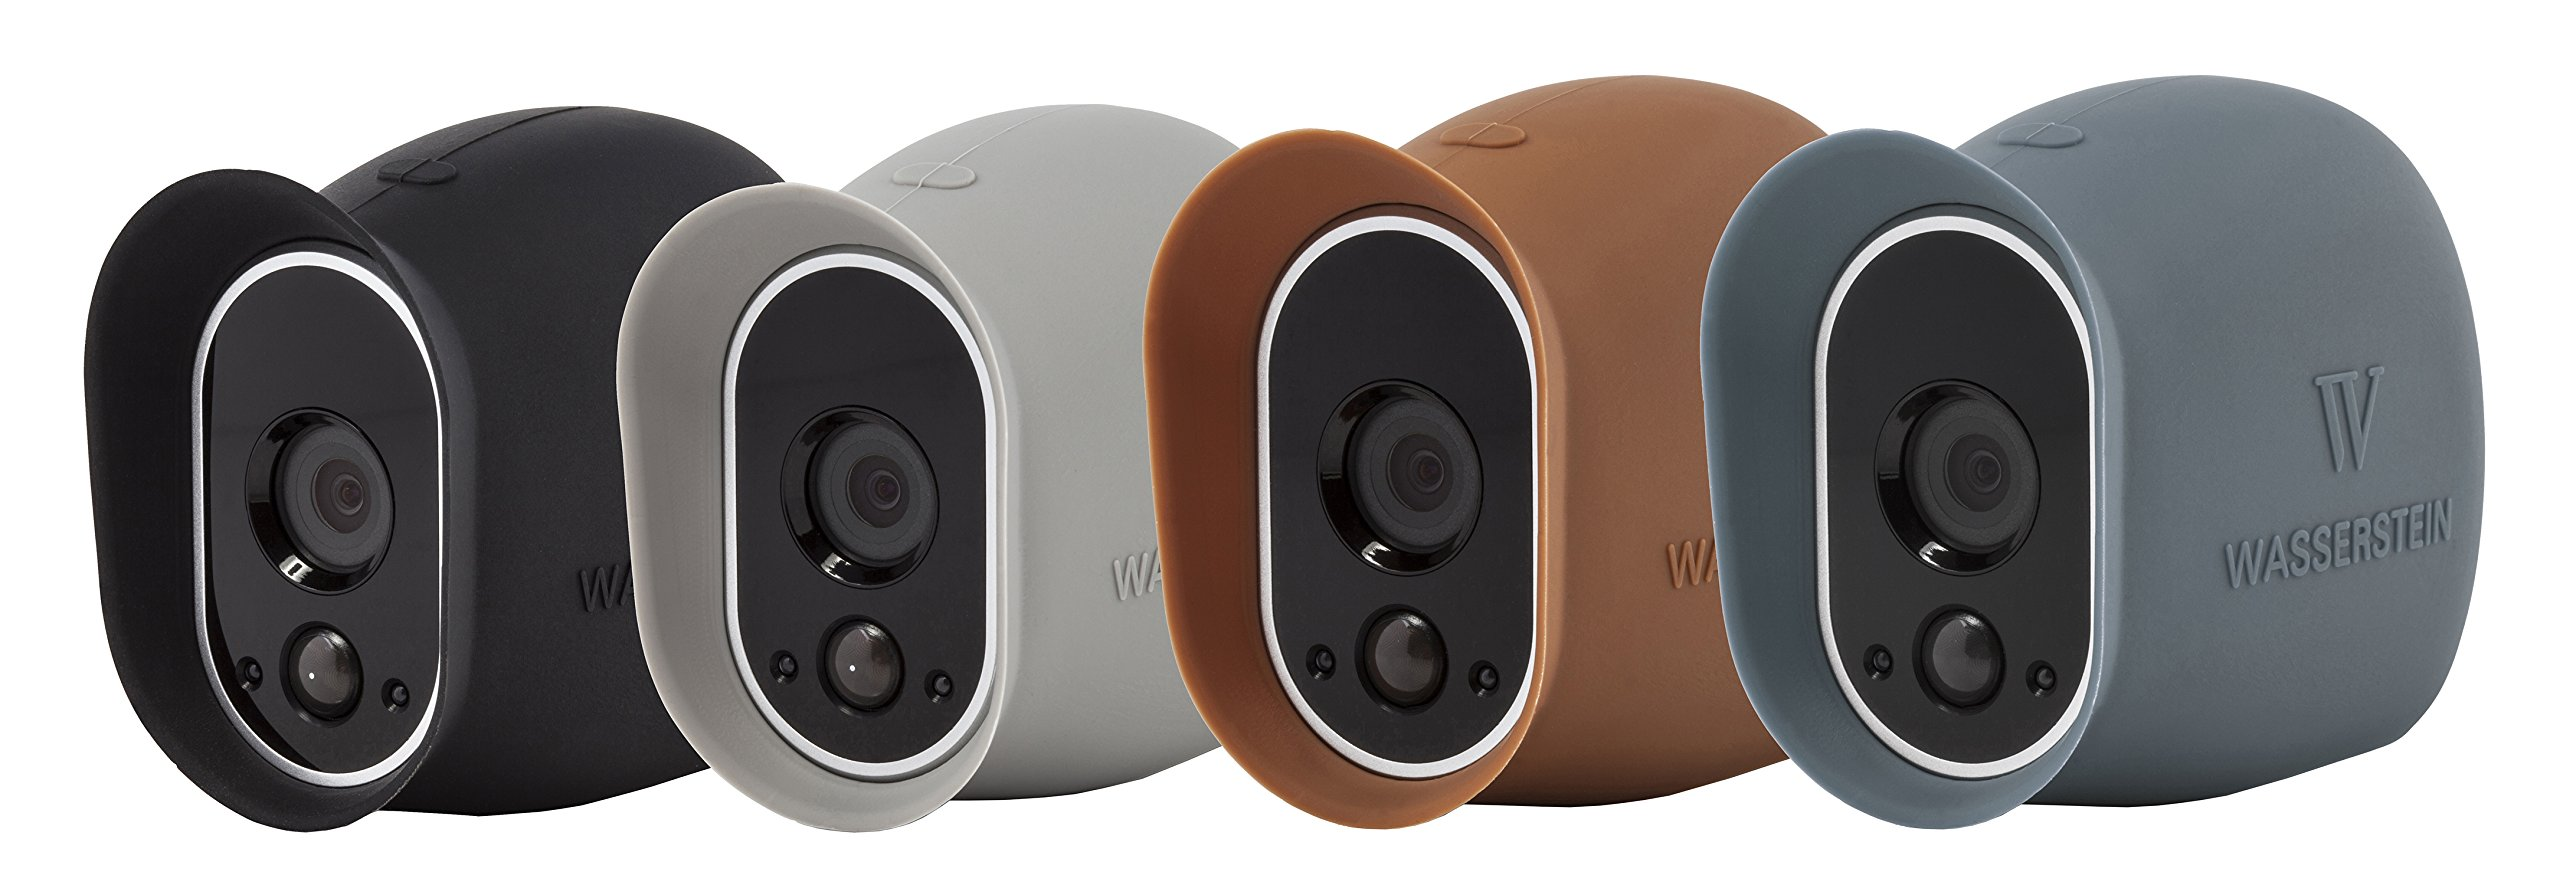 4 x Silicone Skins Compatible with Arlo Smart Security - 100% Wire-Free Cameras — by Wasserstein (Black/Brown/Grey/Blue) by Wasserstein